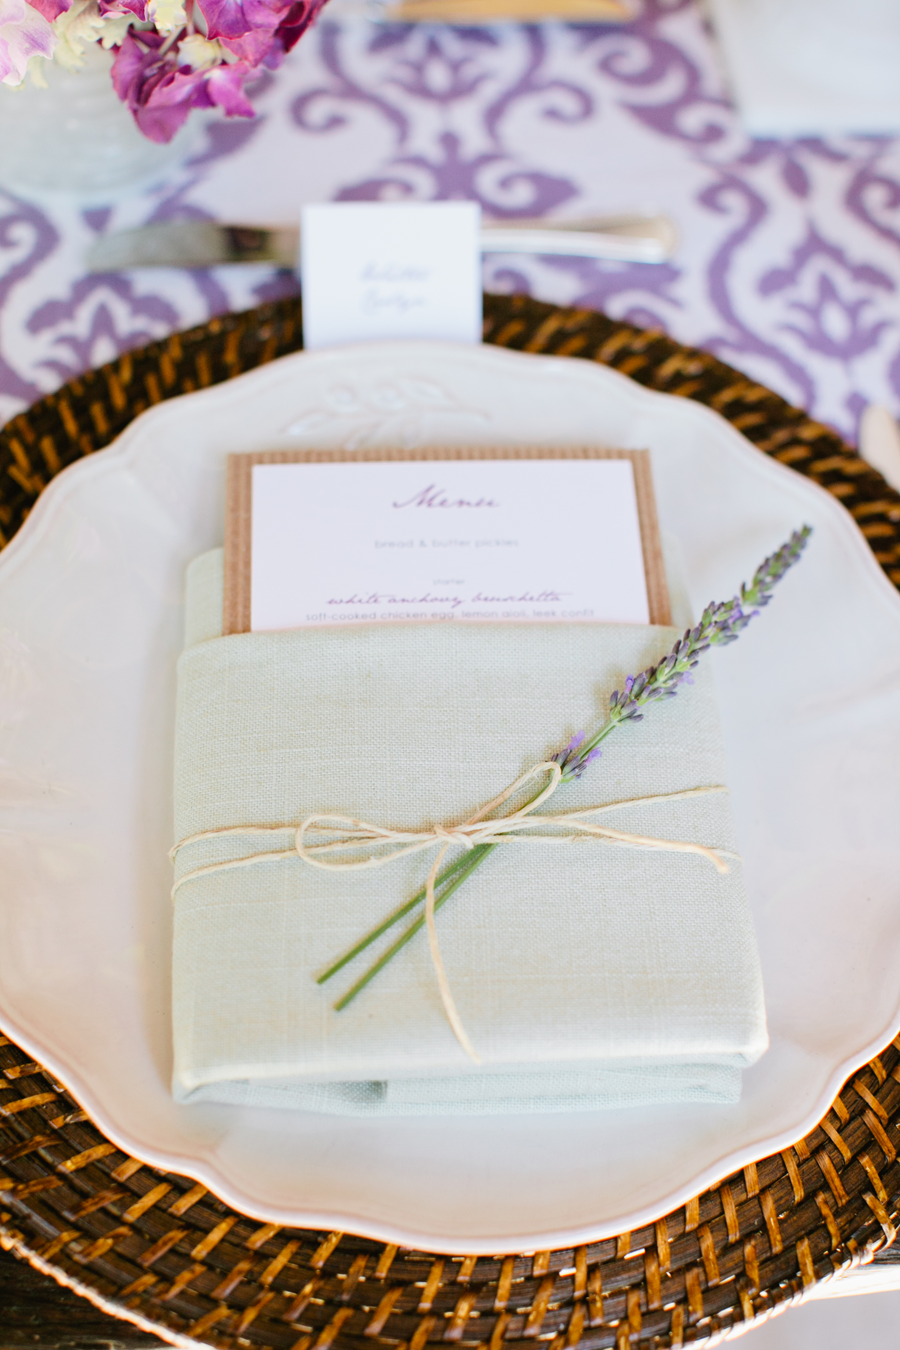 #place-settings, #lavender | Photography: Gladys Jem Photography - gladysjem.com Design + Planning: Charmed Events Group, LLC - charmedeventsplanning.com Floral Design: Poppy\'s Petalworks - poppyspetalworks.com | #LavenderWeddings